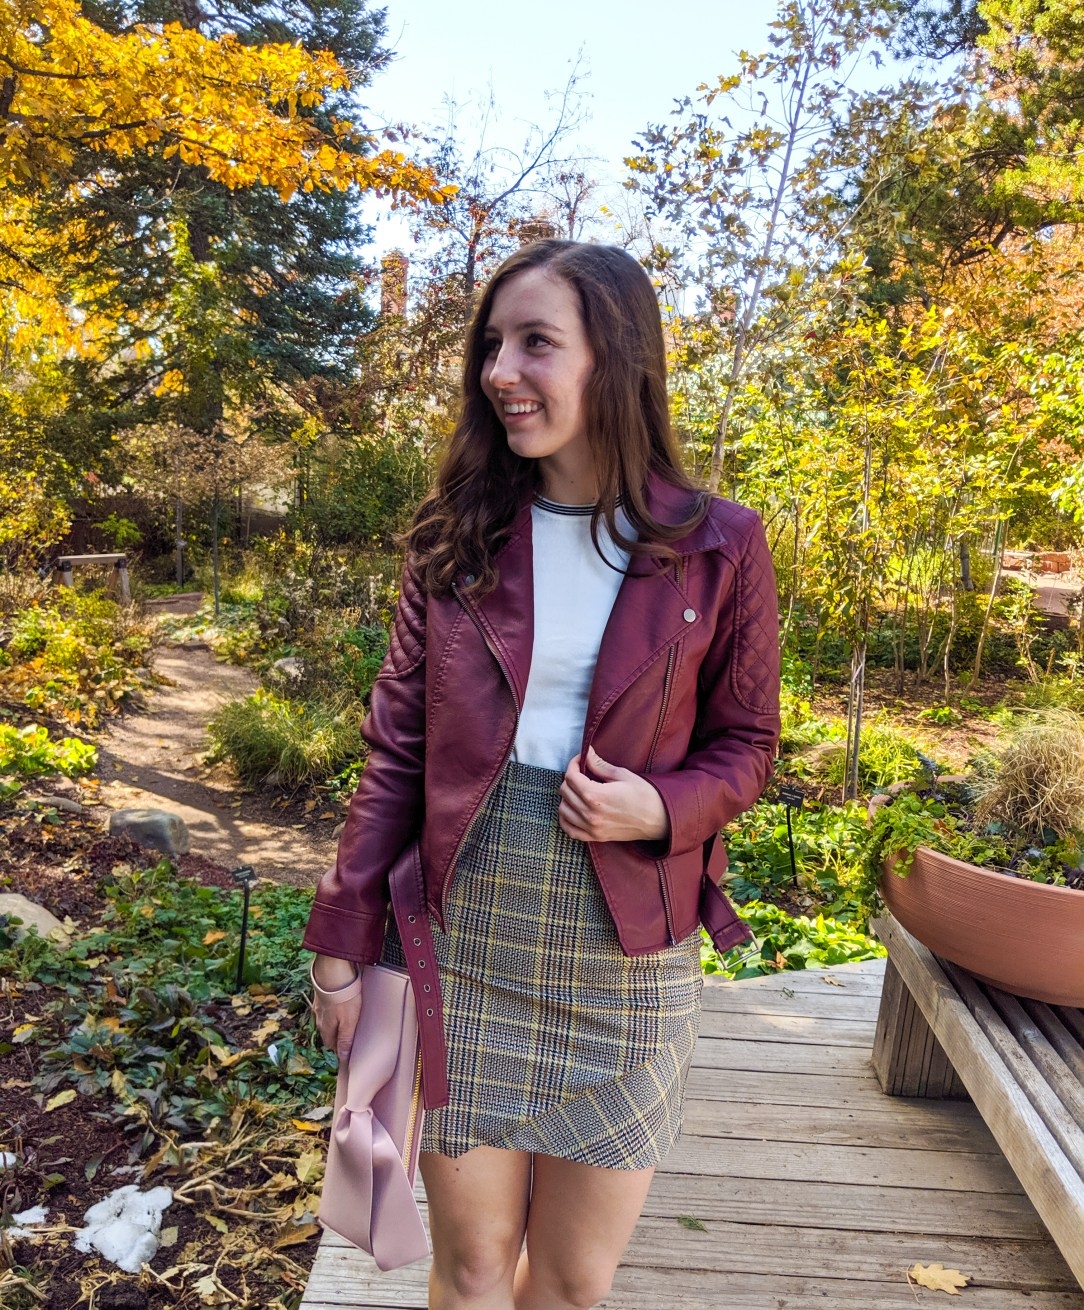 burgundy jacket, white sweater, plaid skirt, preppy outfit